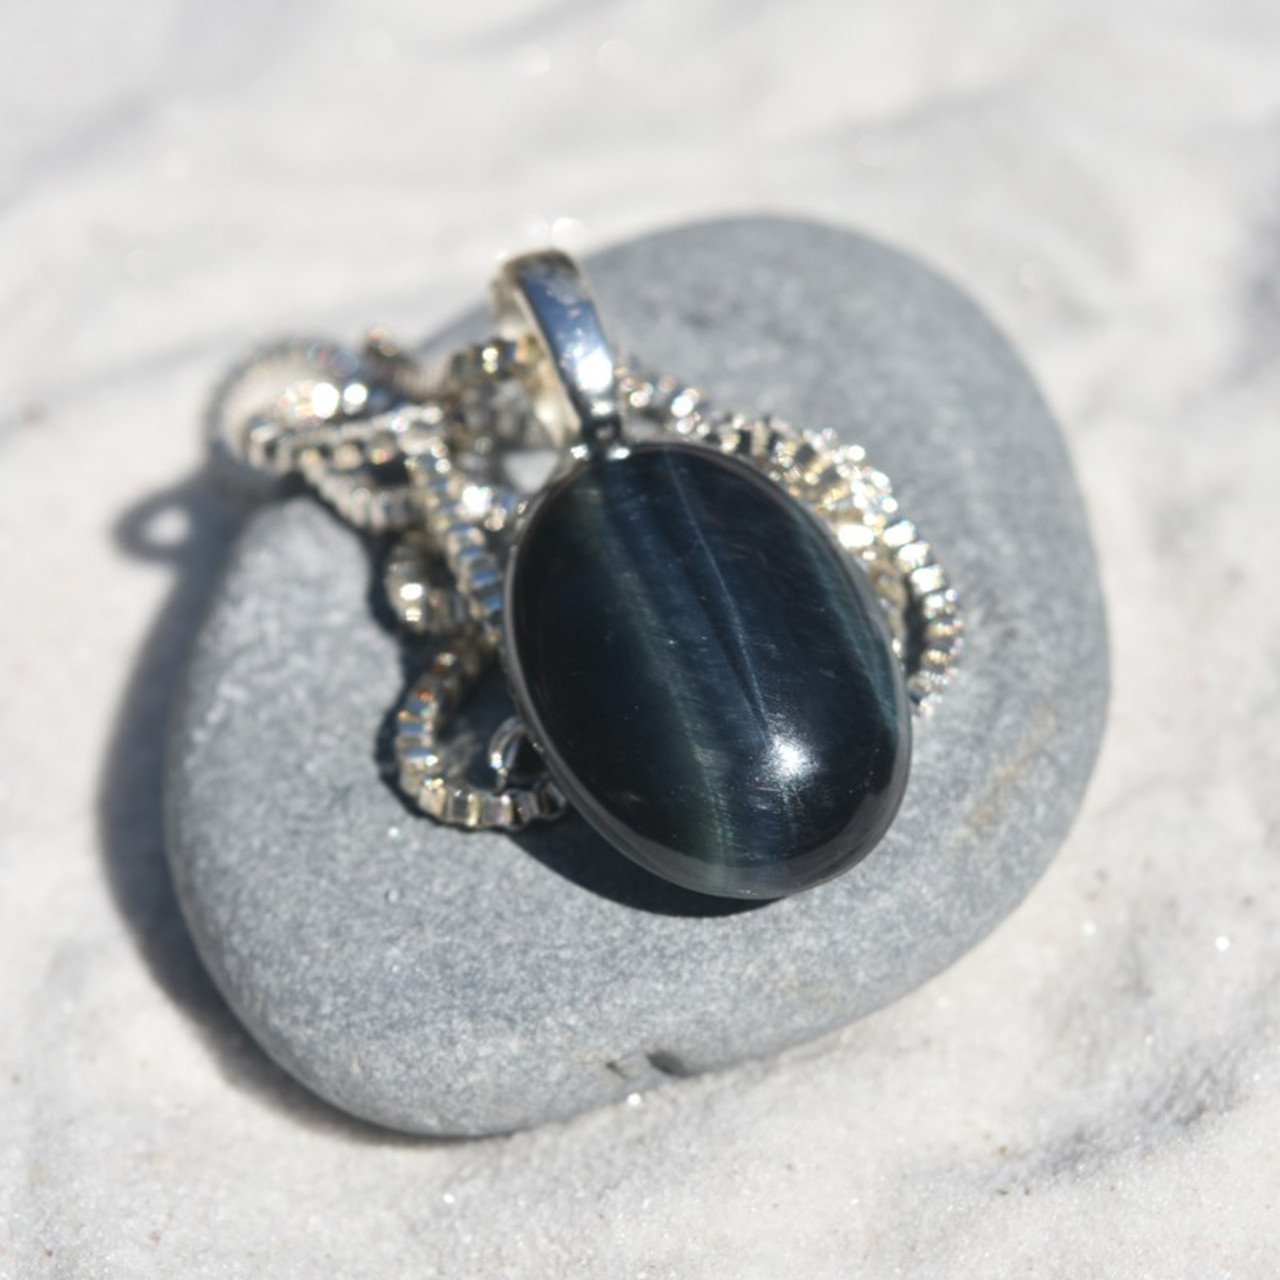 Blue Tiger's Eye Cabochon Pendant and Necklace